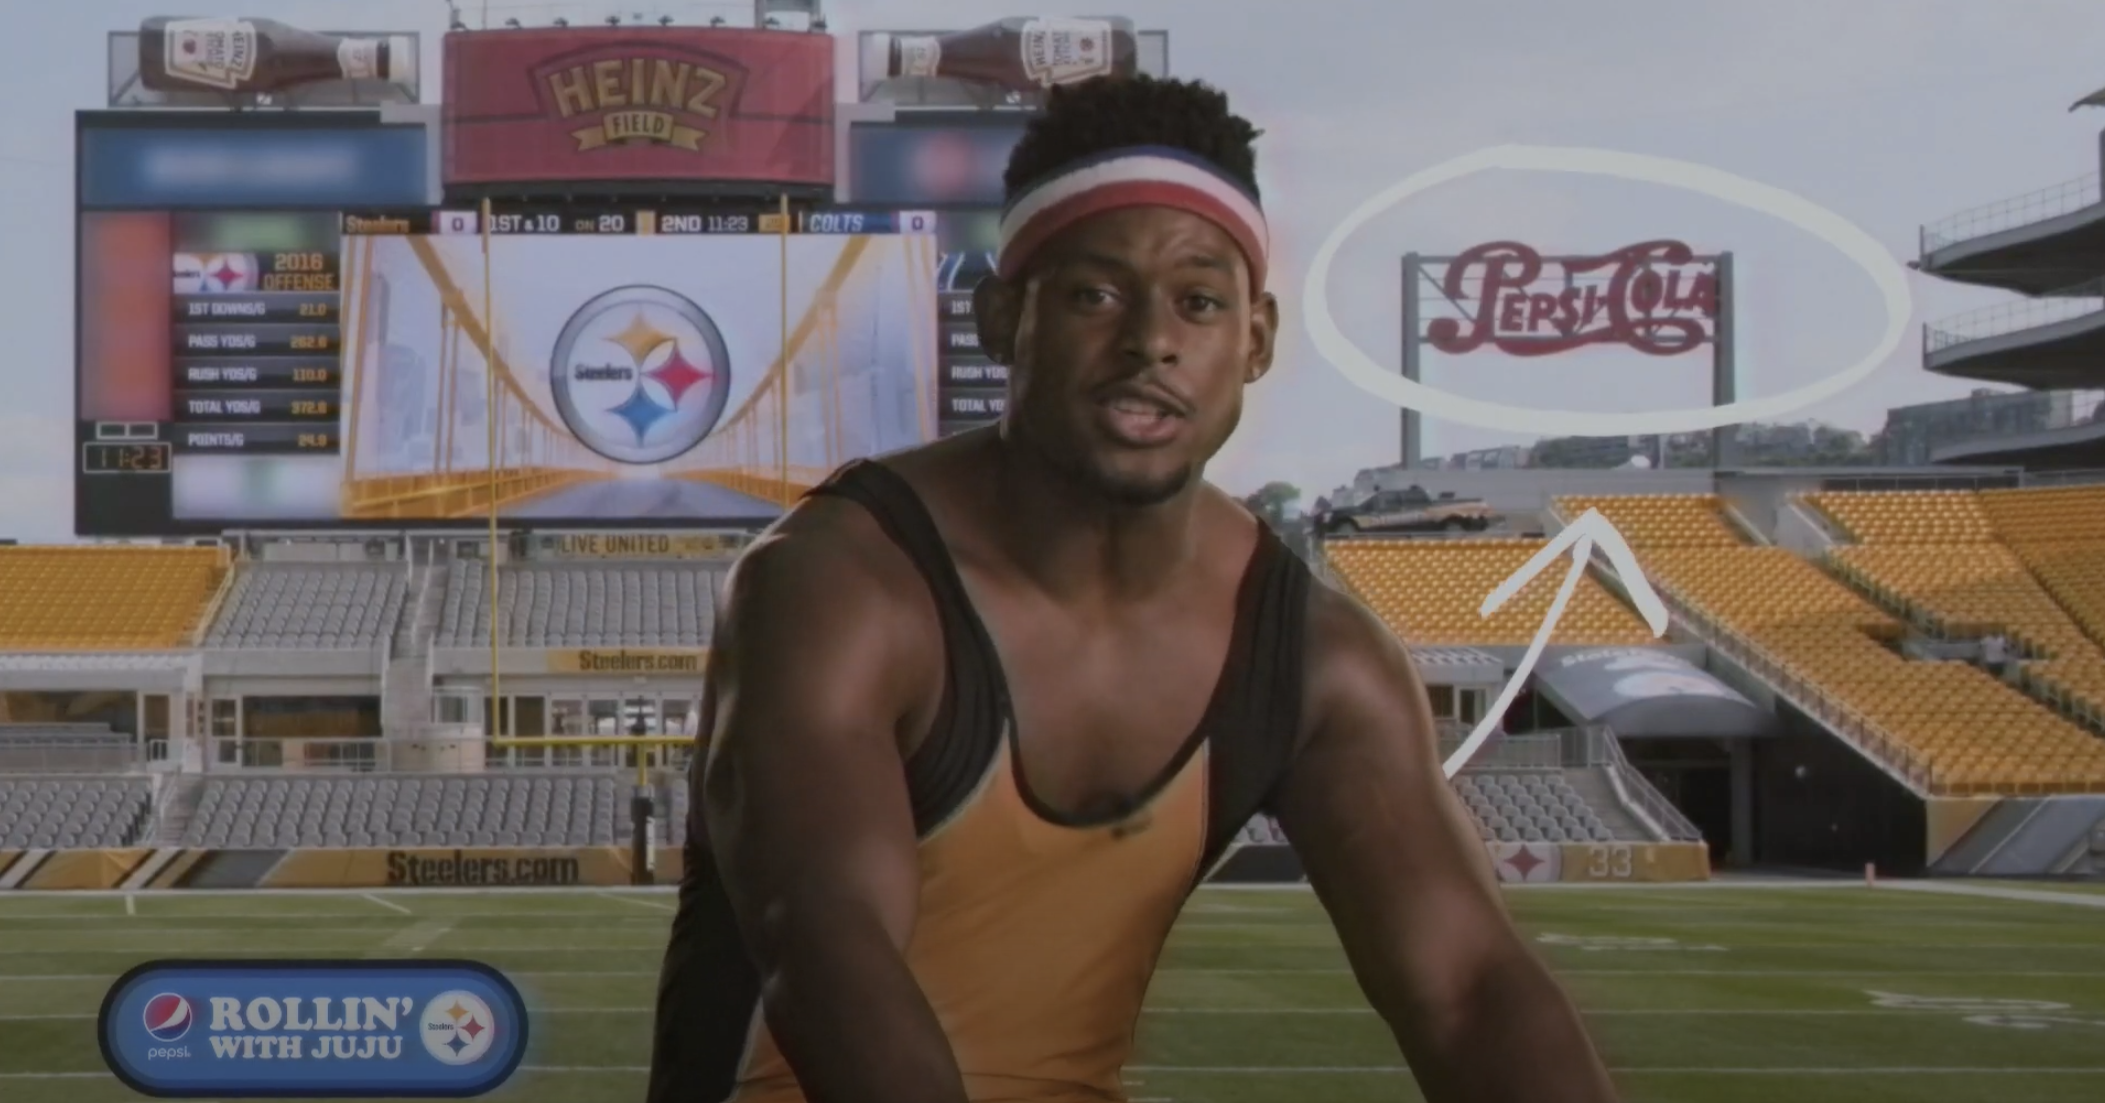 Pepsi Fan Portals Pair NFL Stars with Unlikely Scenarios in Valiant Pictures Campaign